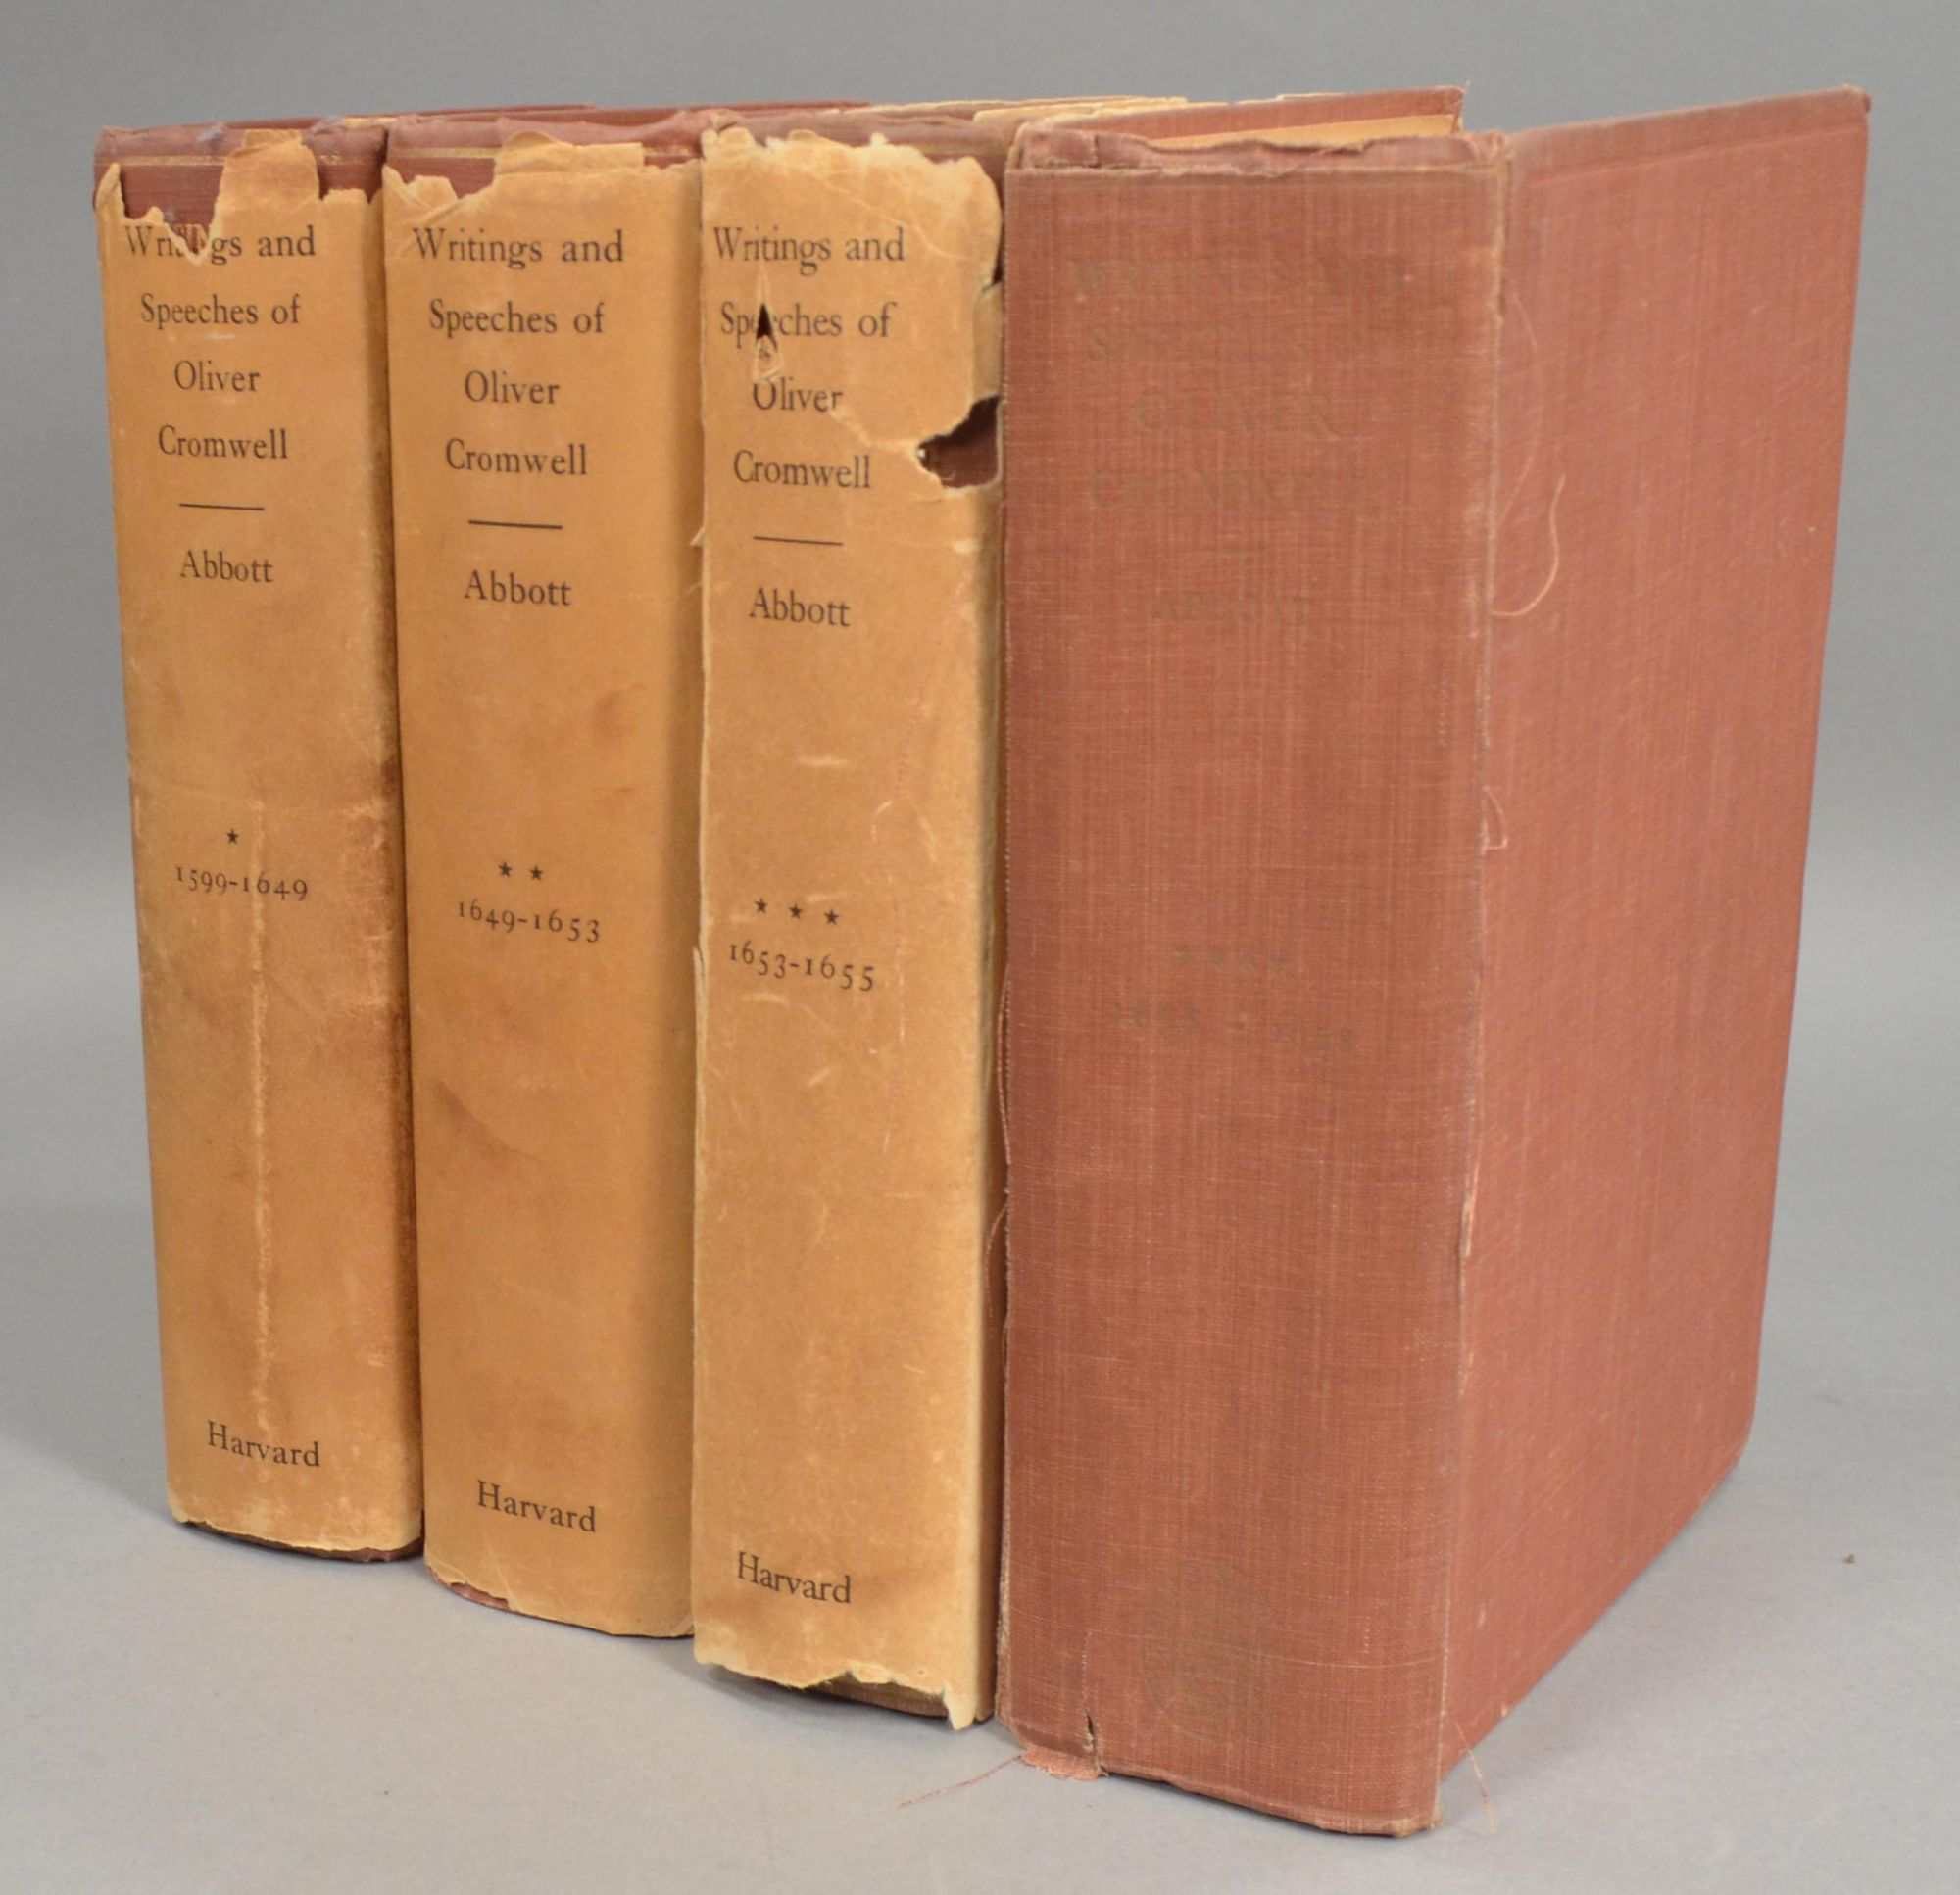 CROMWELL, OLIVER - Writings and Speeches of Oliver Cromwell, 4 Volumes